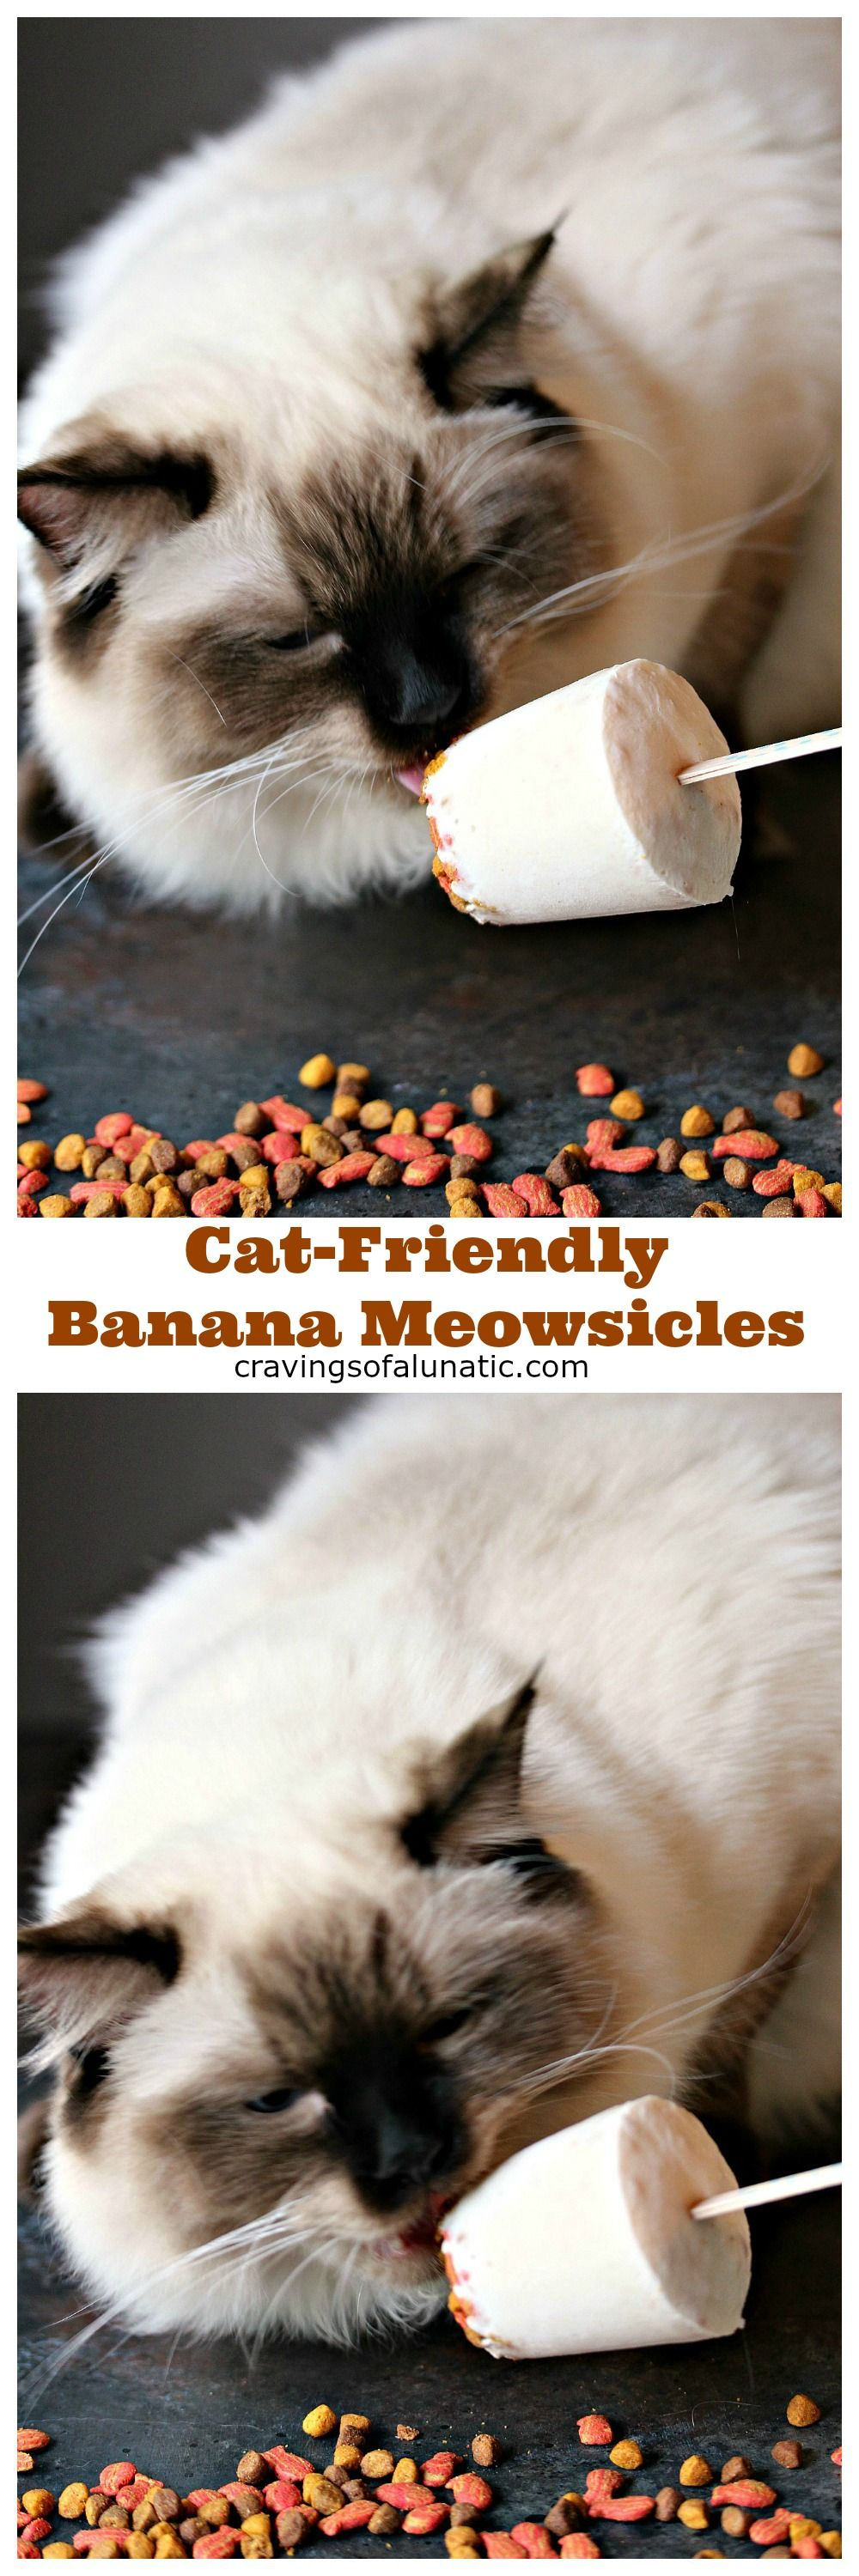 CatFriendly Banana Meowsicles from